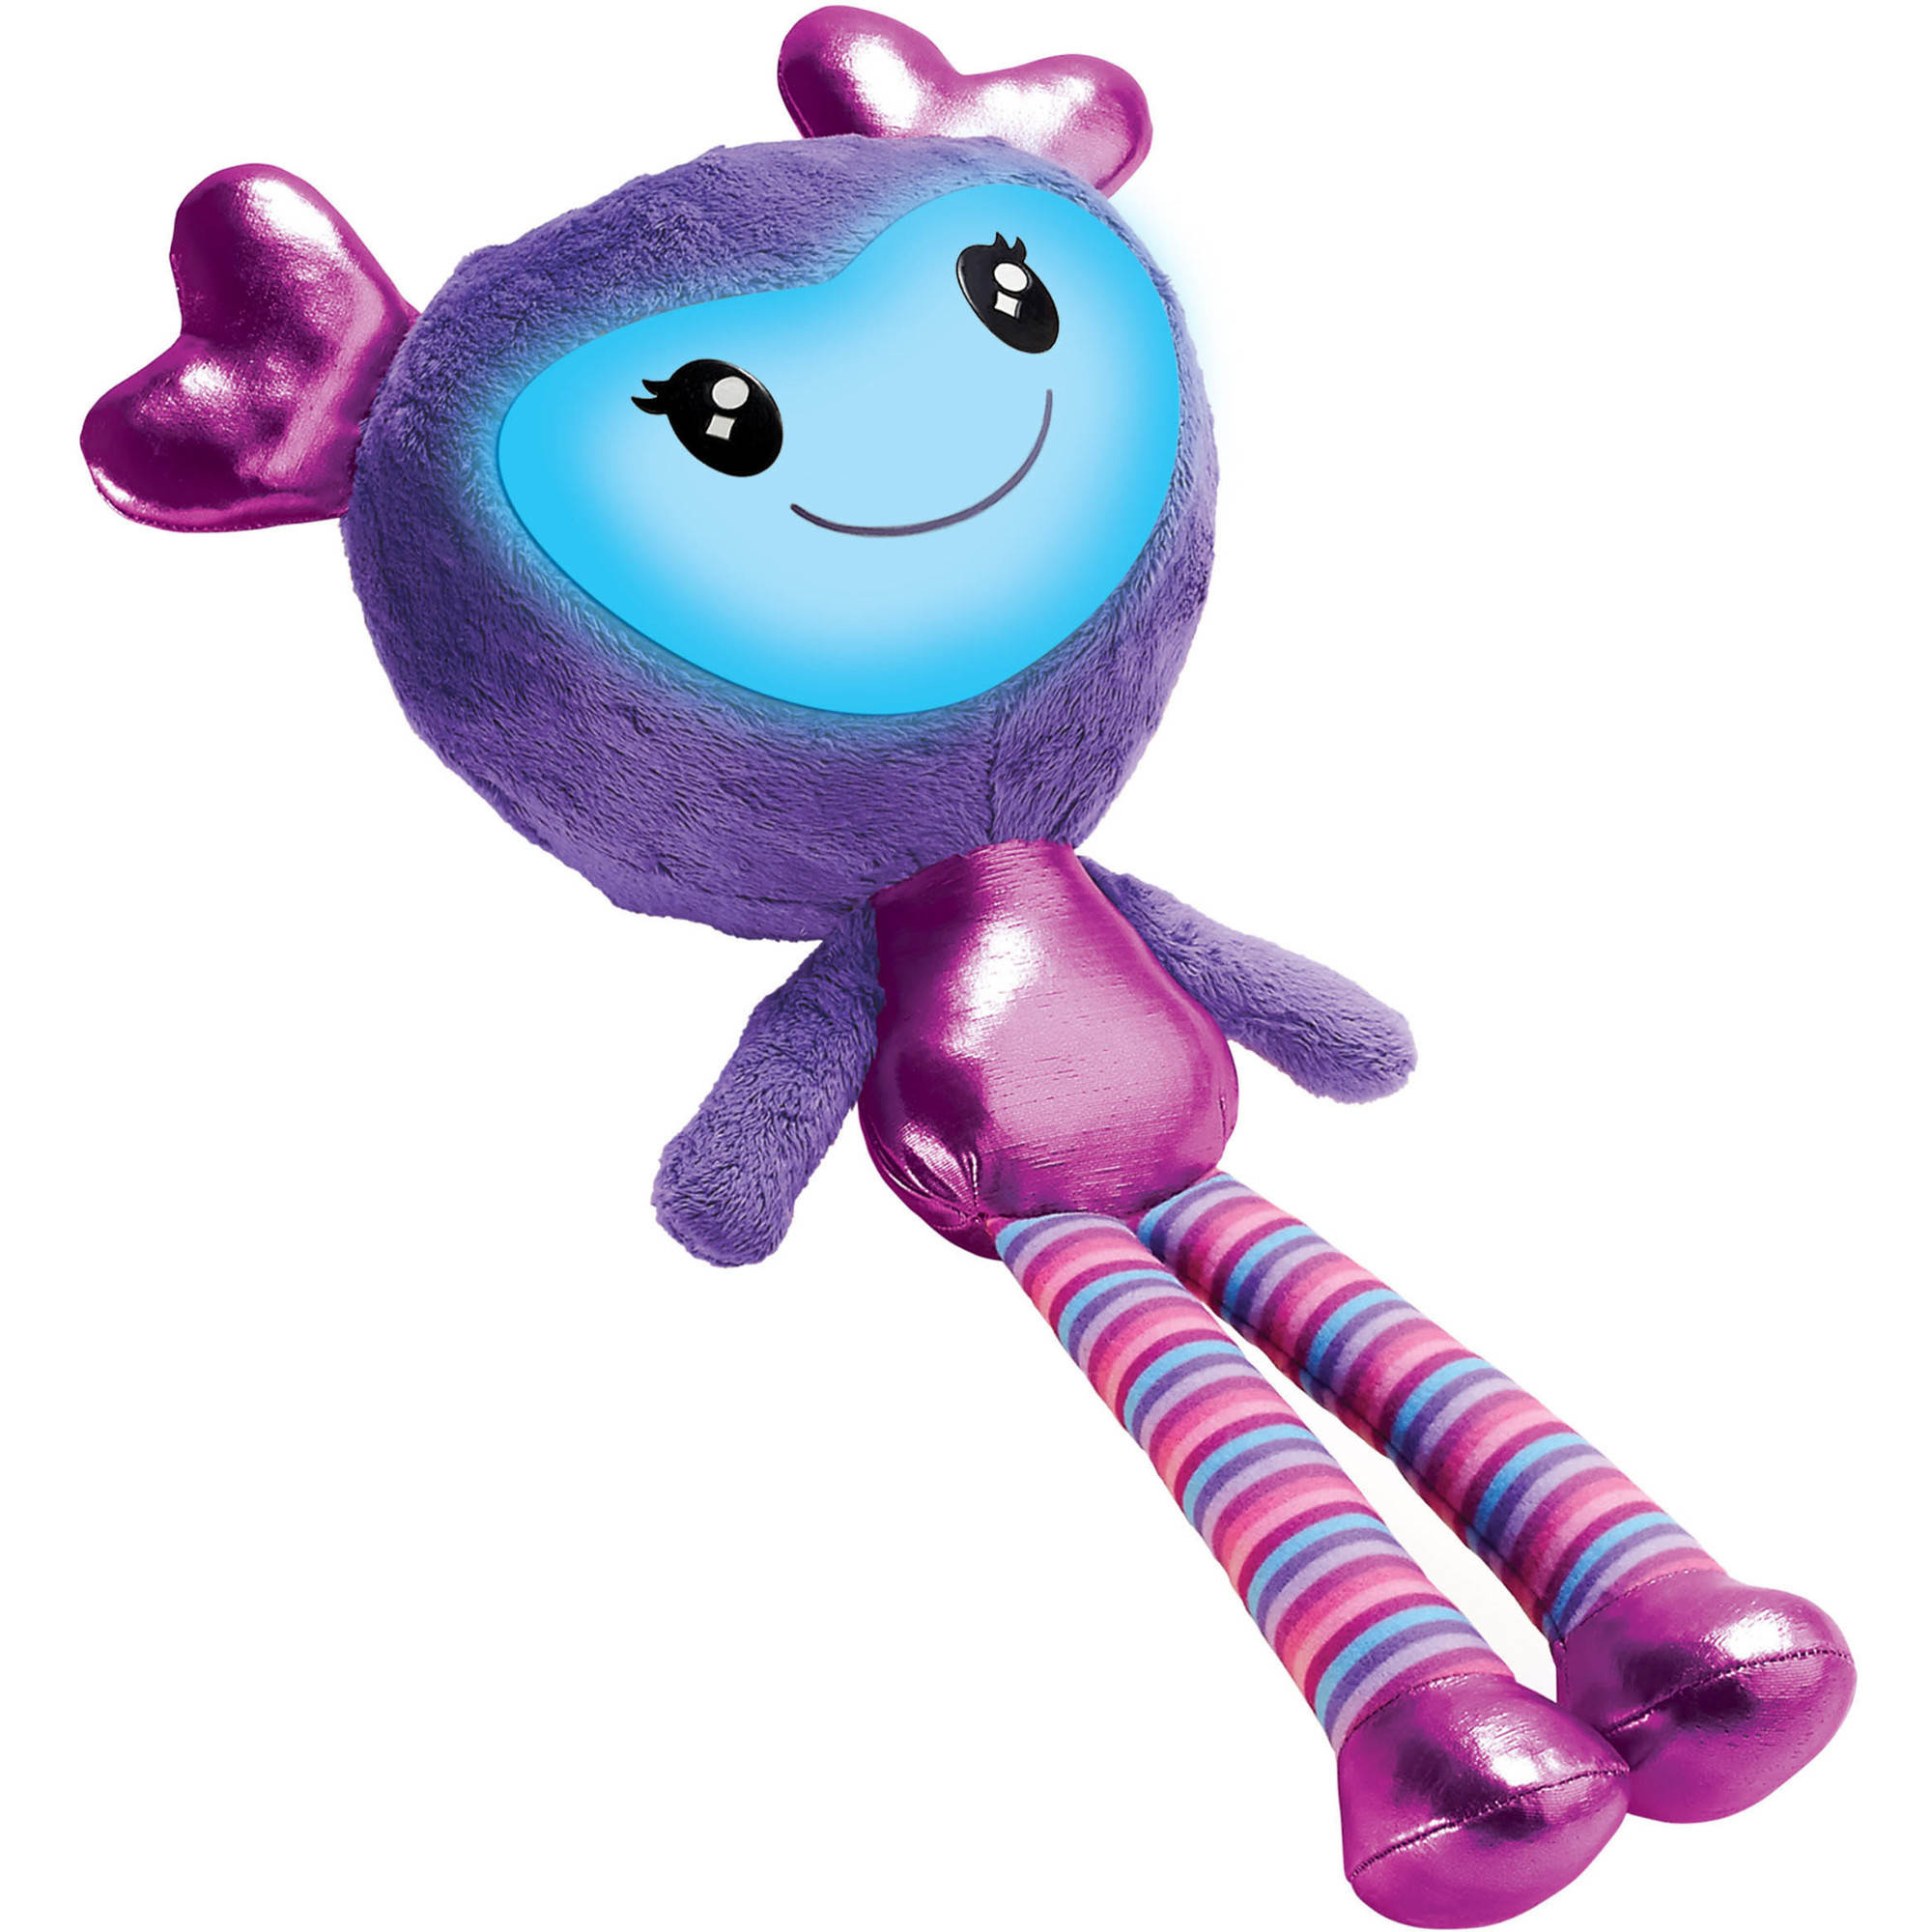 Brightlings Interactive Plush, Purple, 15